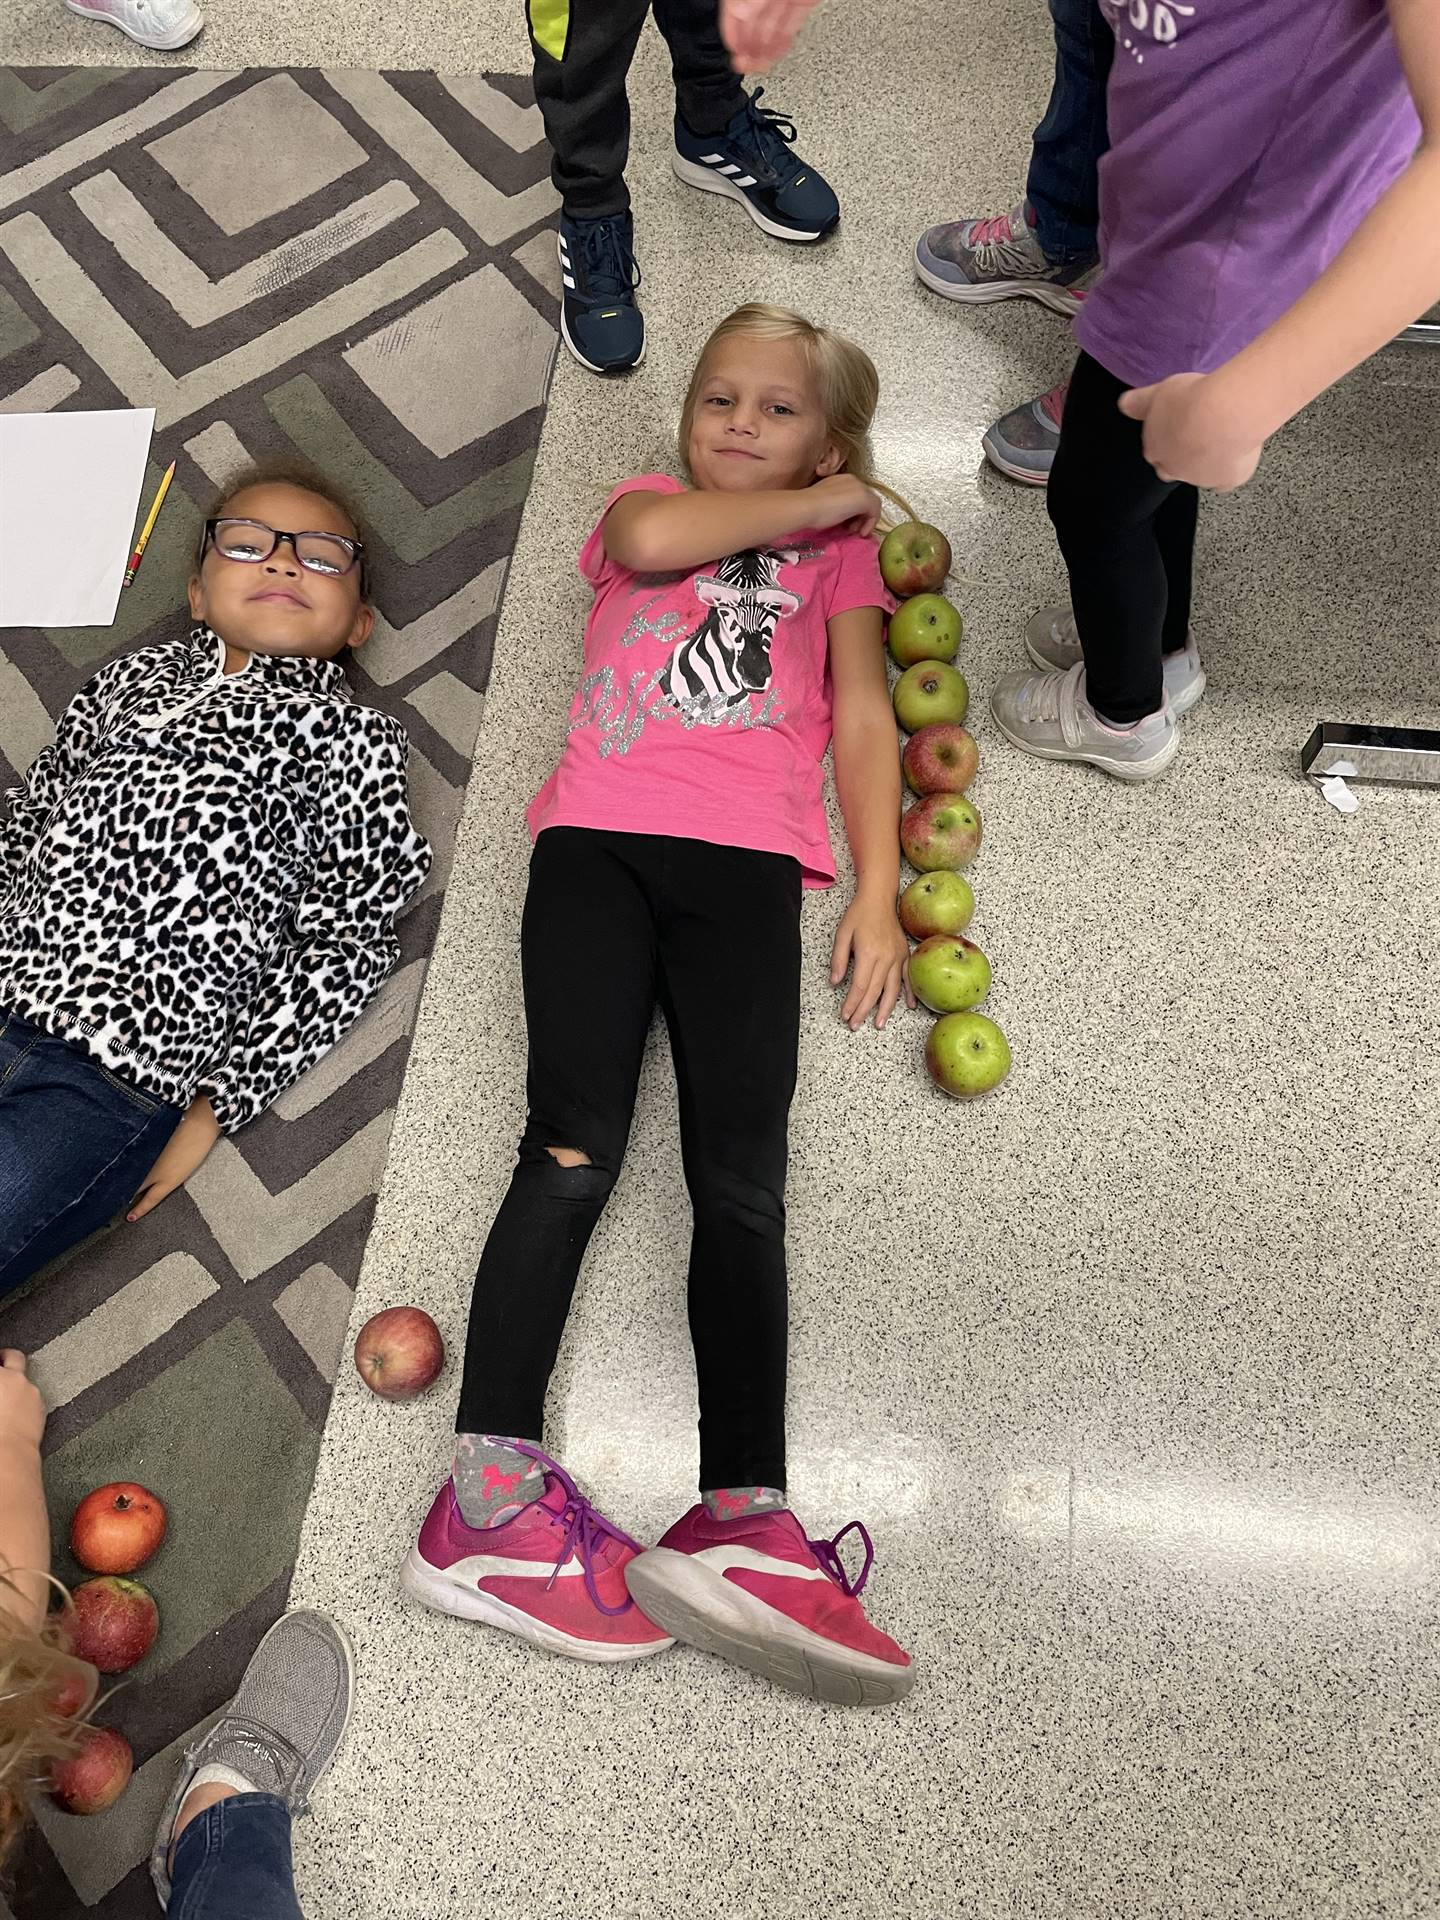 Students with apples for Johnny Appleseed day